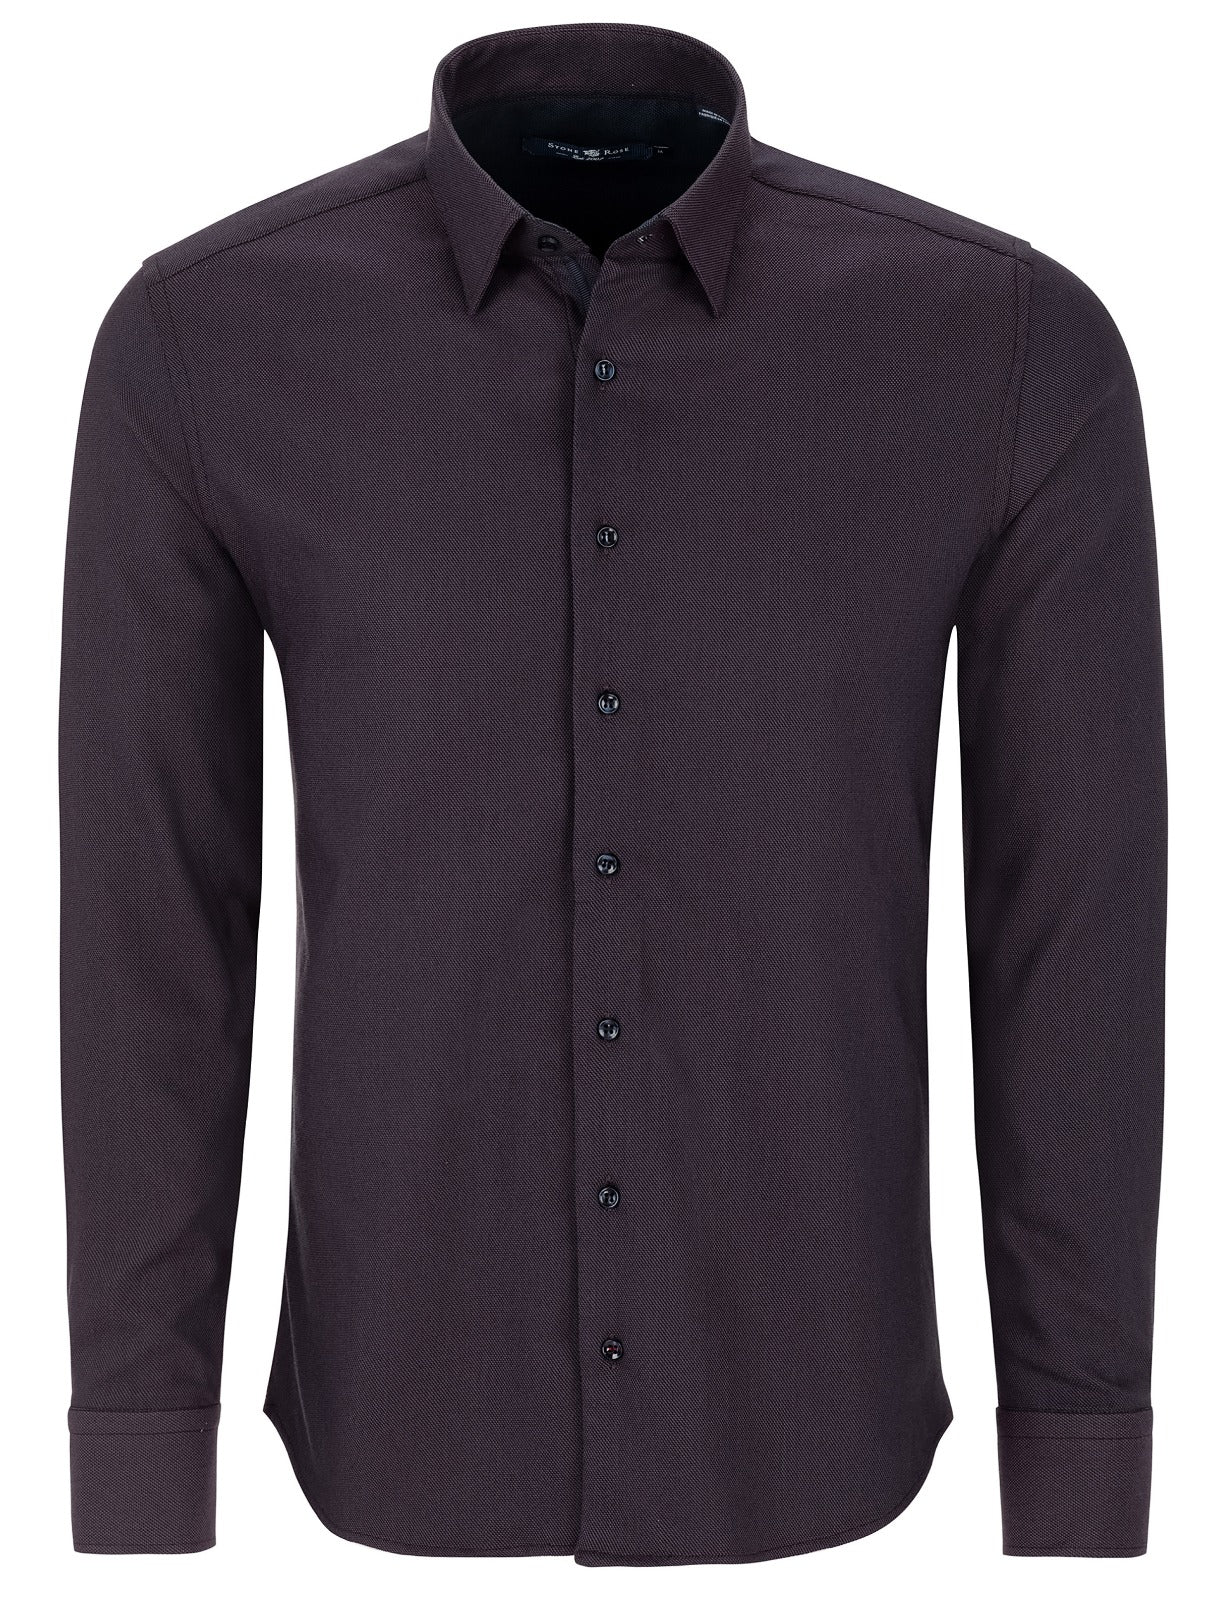 Berry Dry Touch Jacquard Long Sleeve Shirt